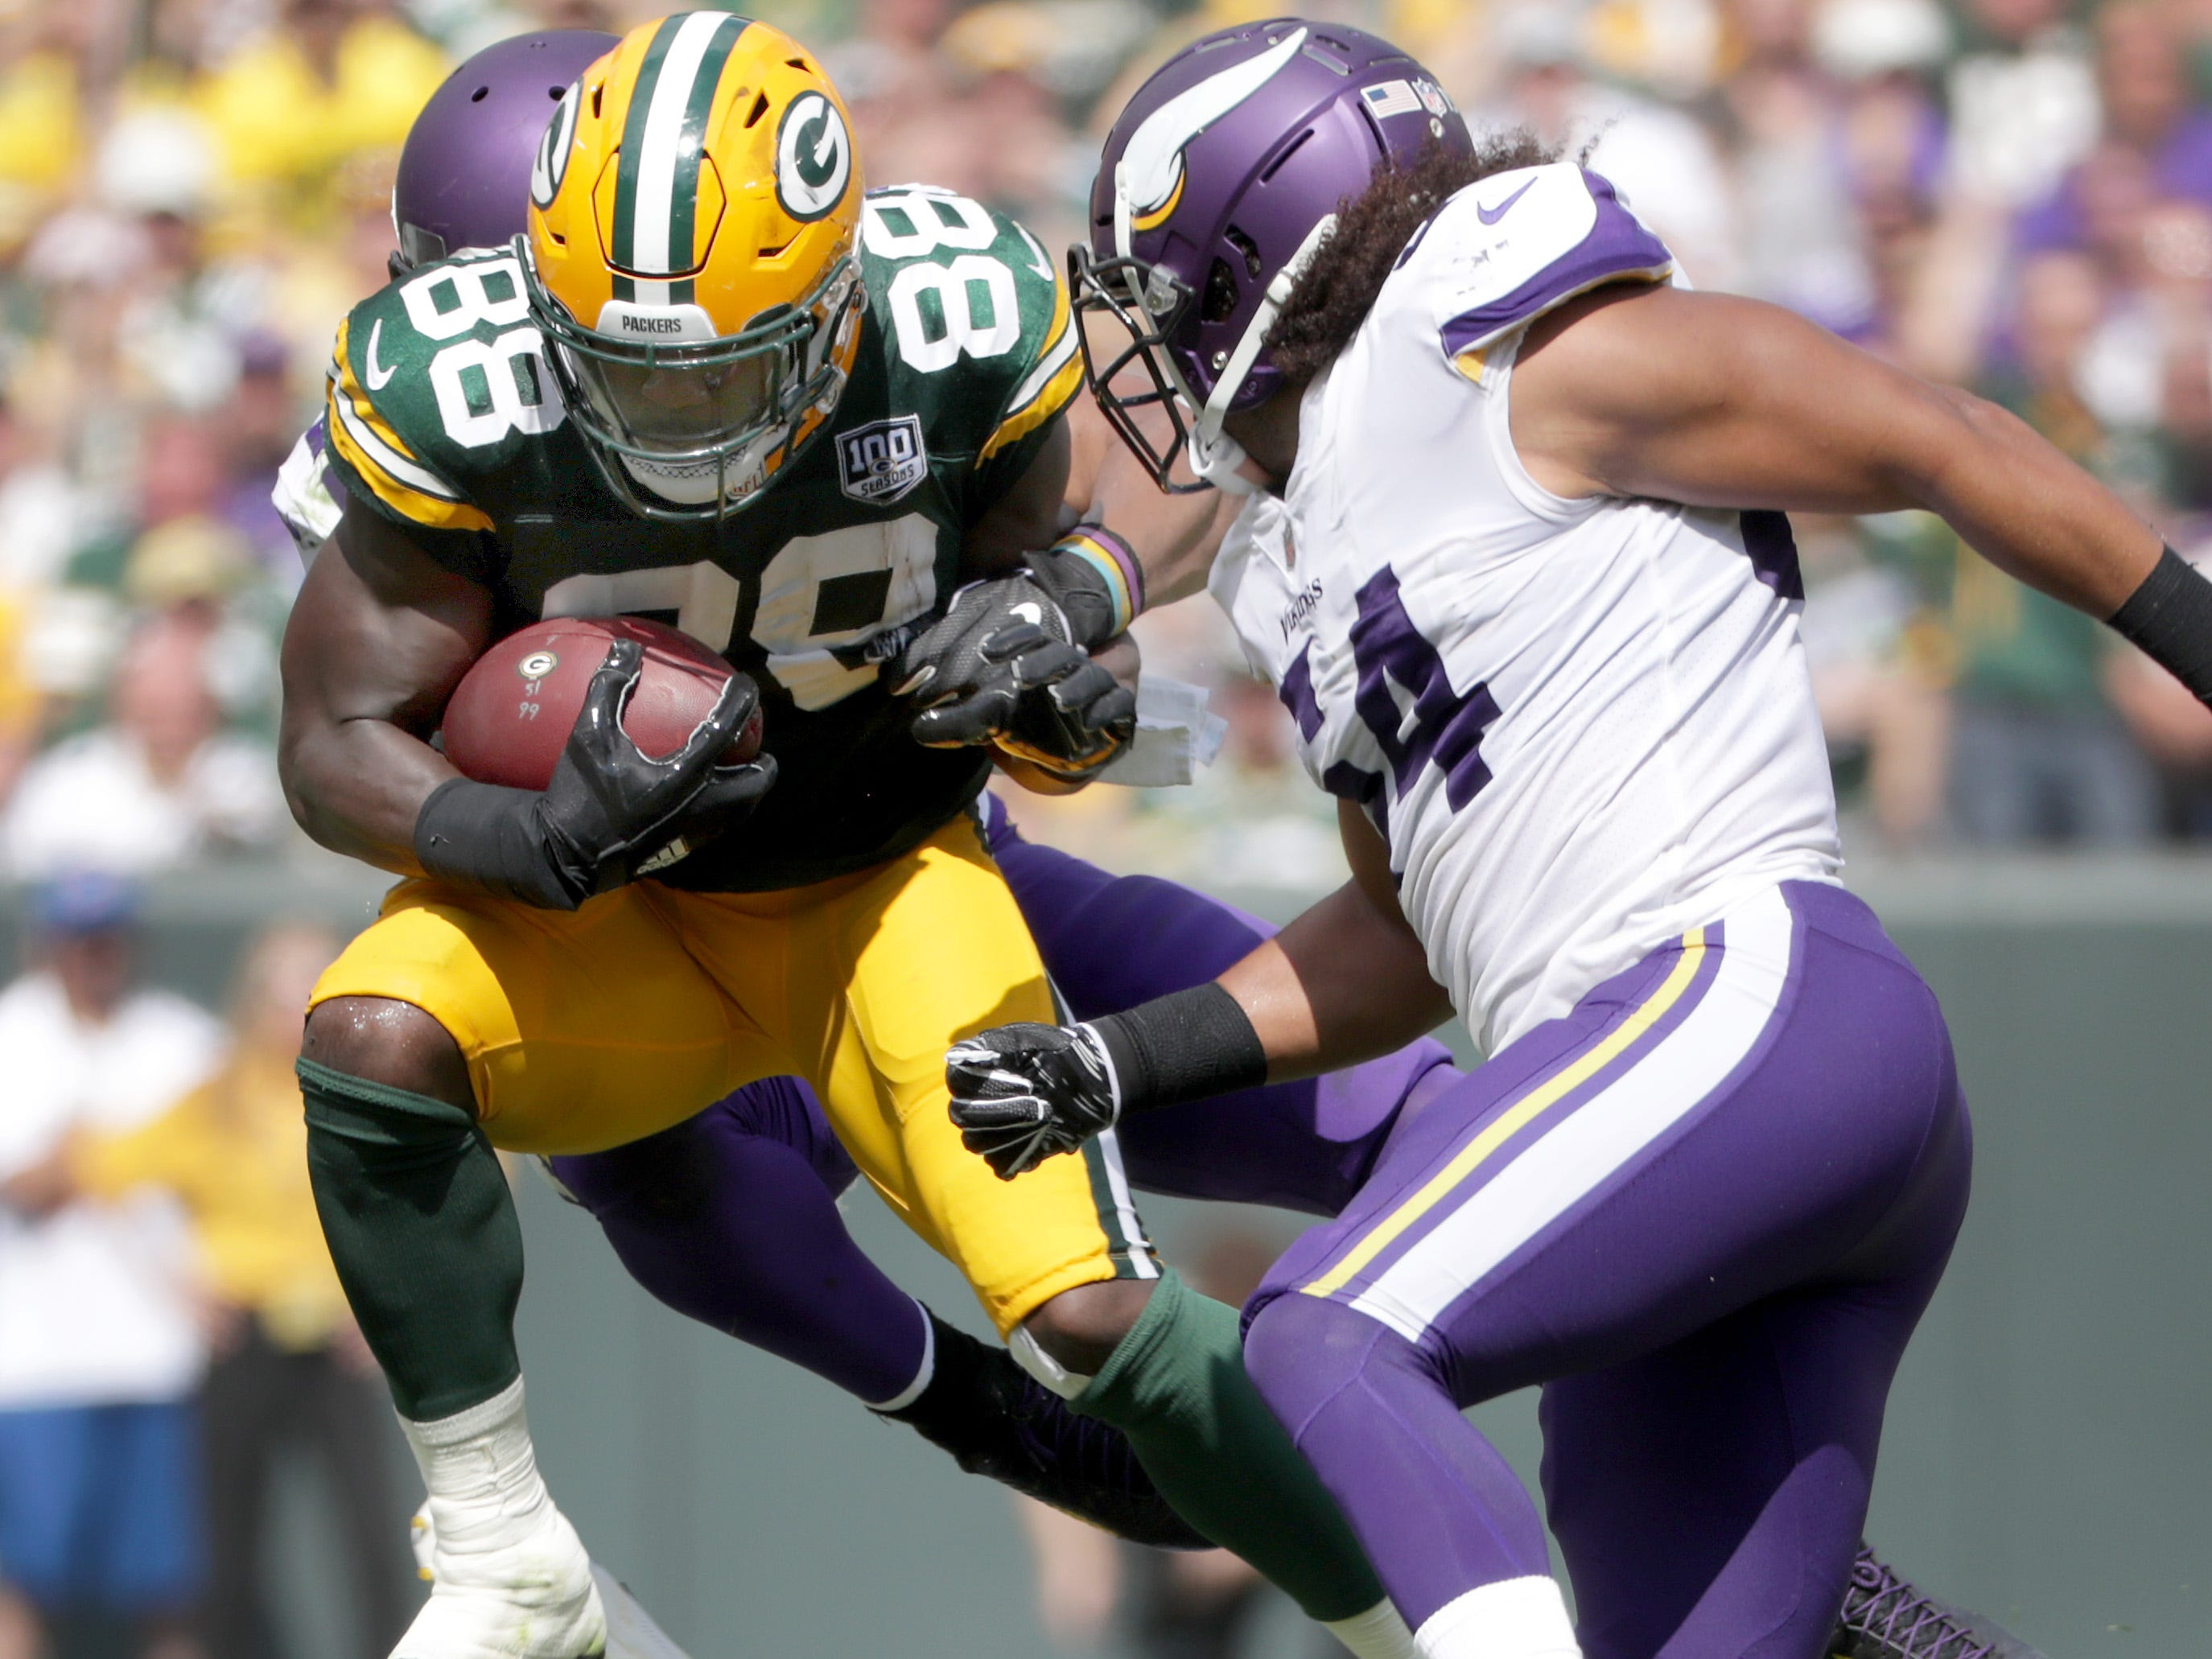 Green Bay Packers' Ty Montgomery against the Minnesota Vikings during their football game on Sunday, September 16, 2018, at Lambeau Field in Green Bay, Wis.